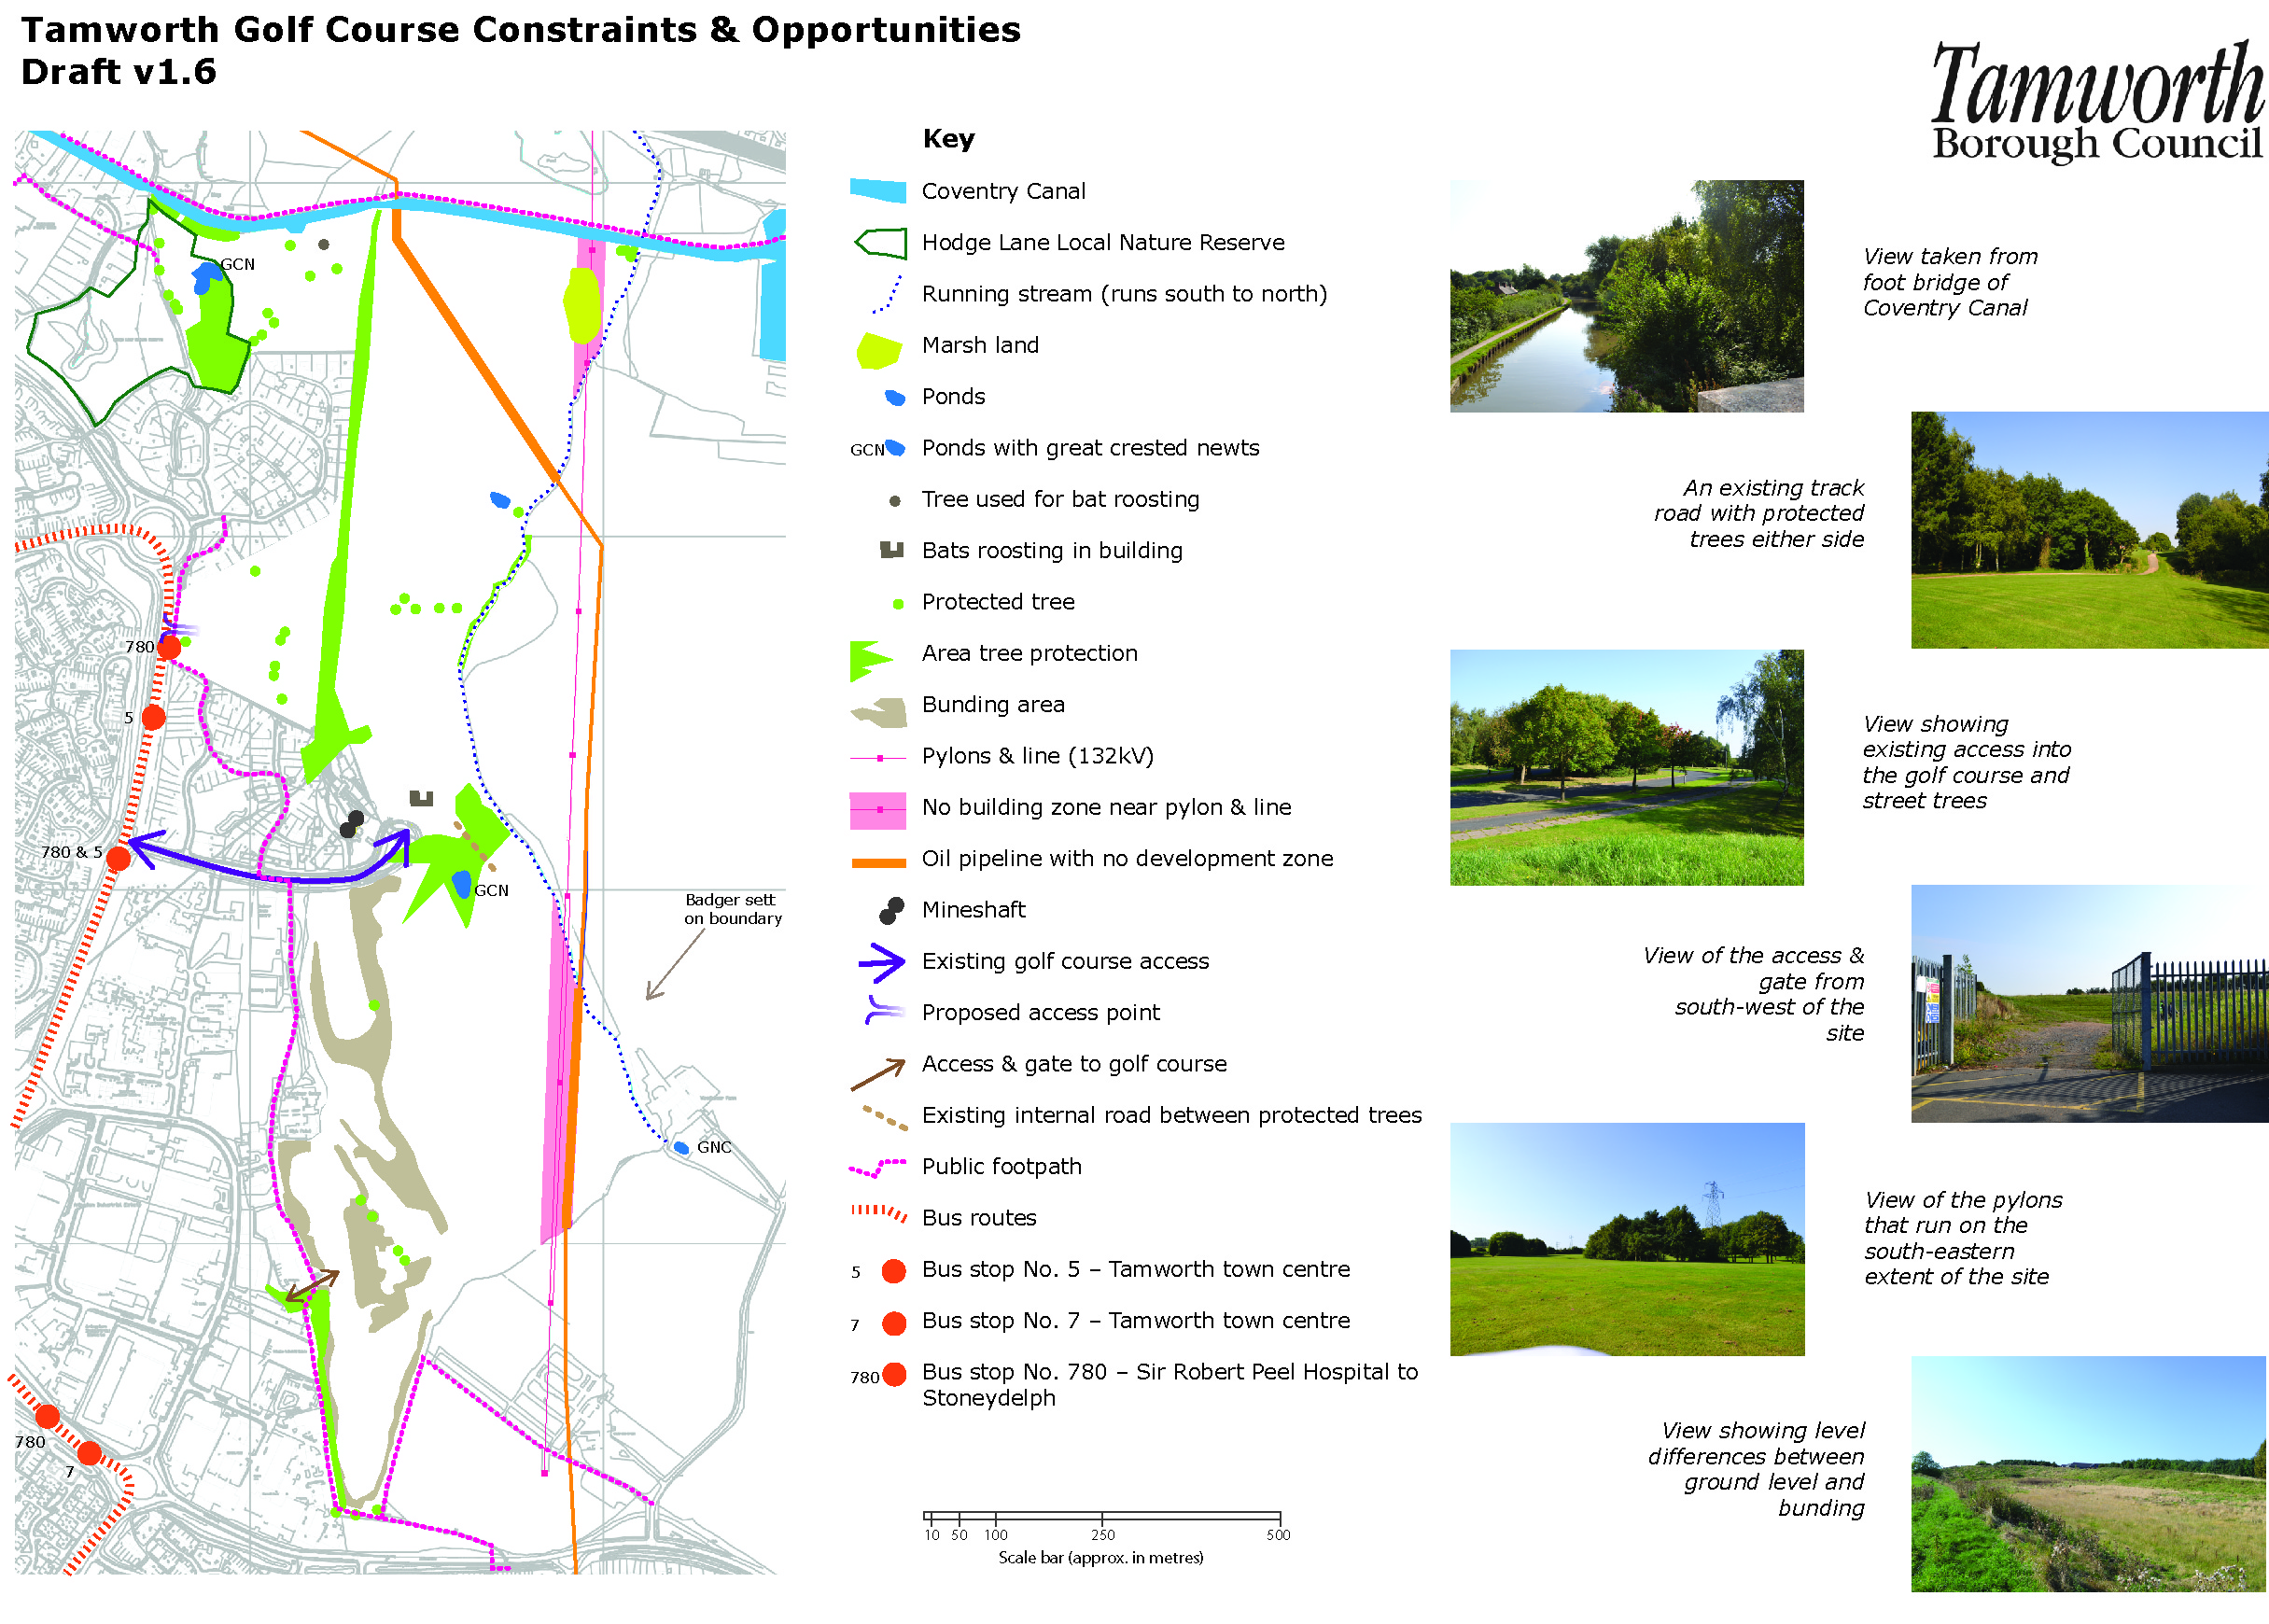 Golf course plans and reports Tamworth Borough Council